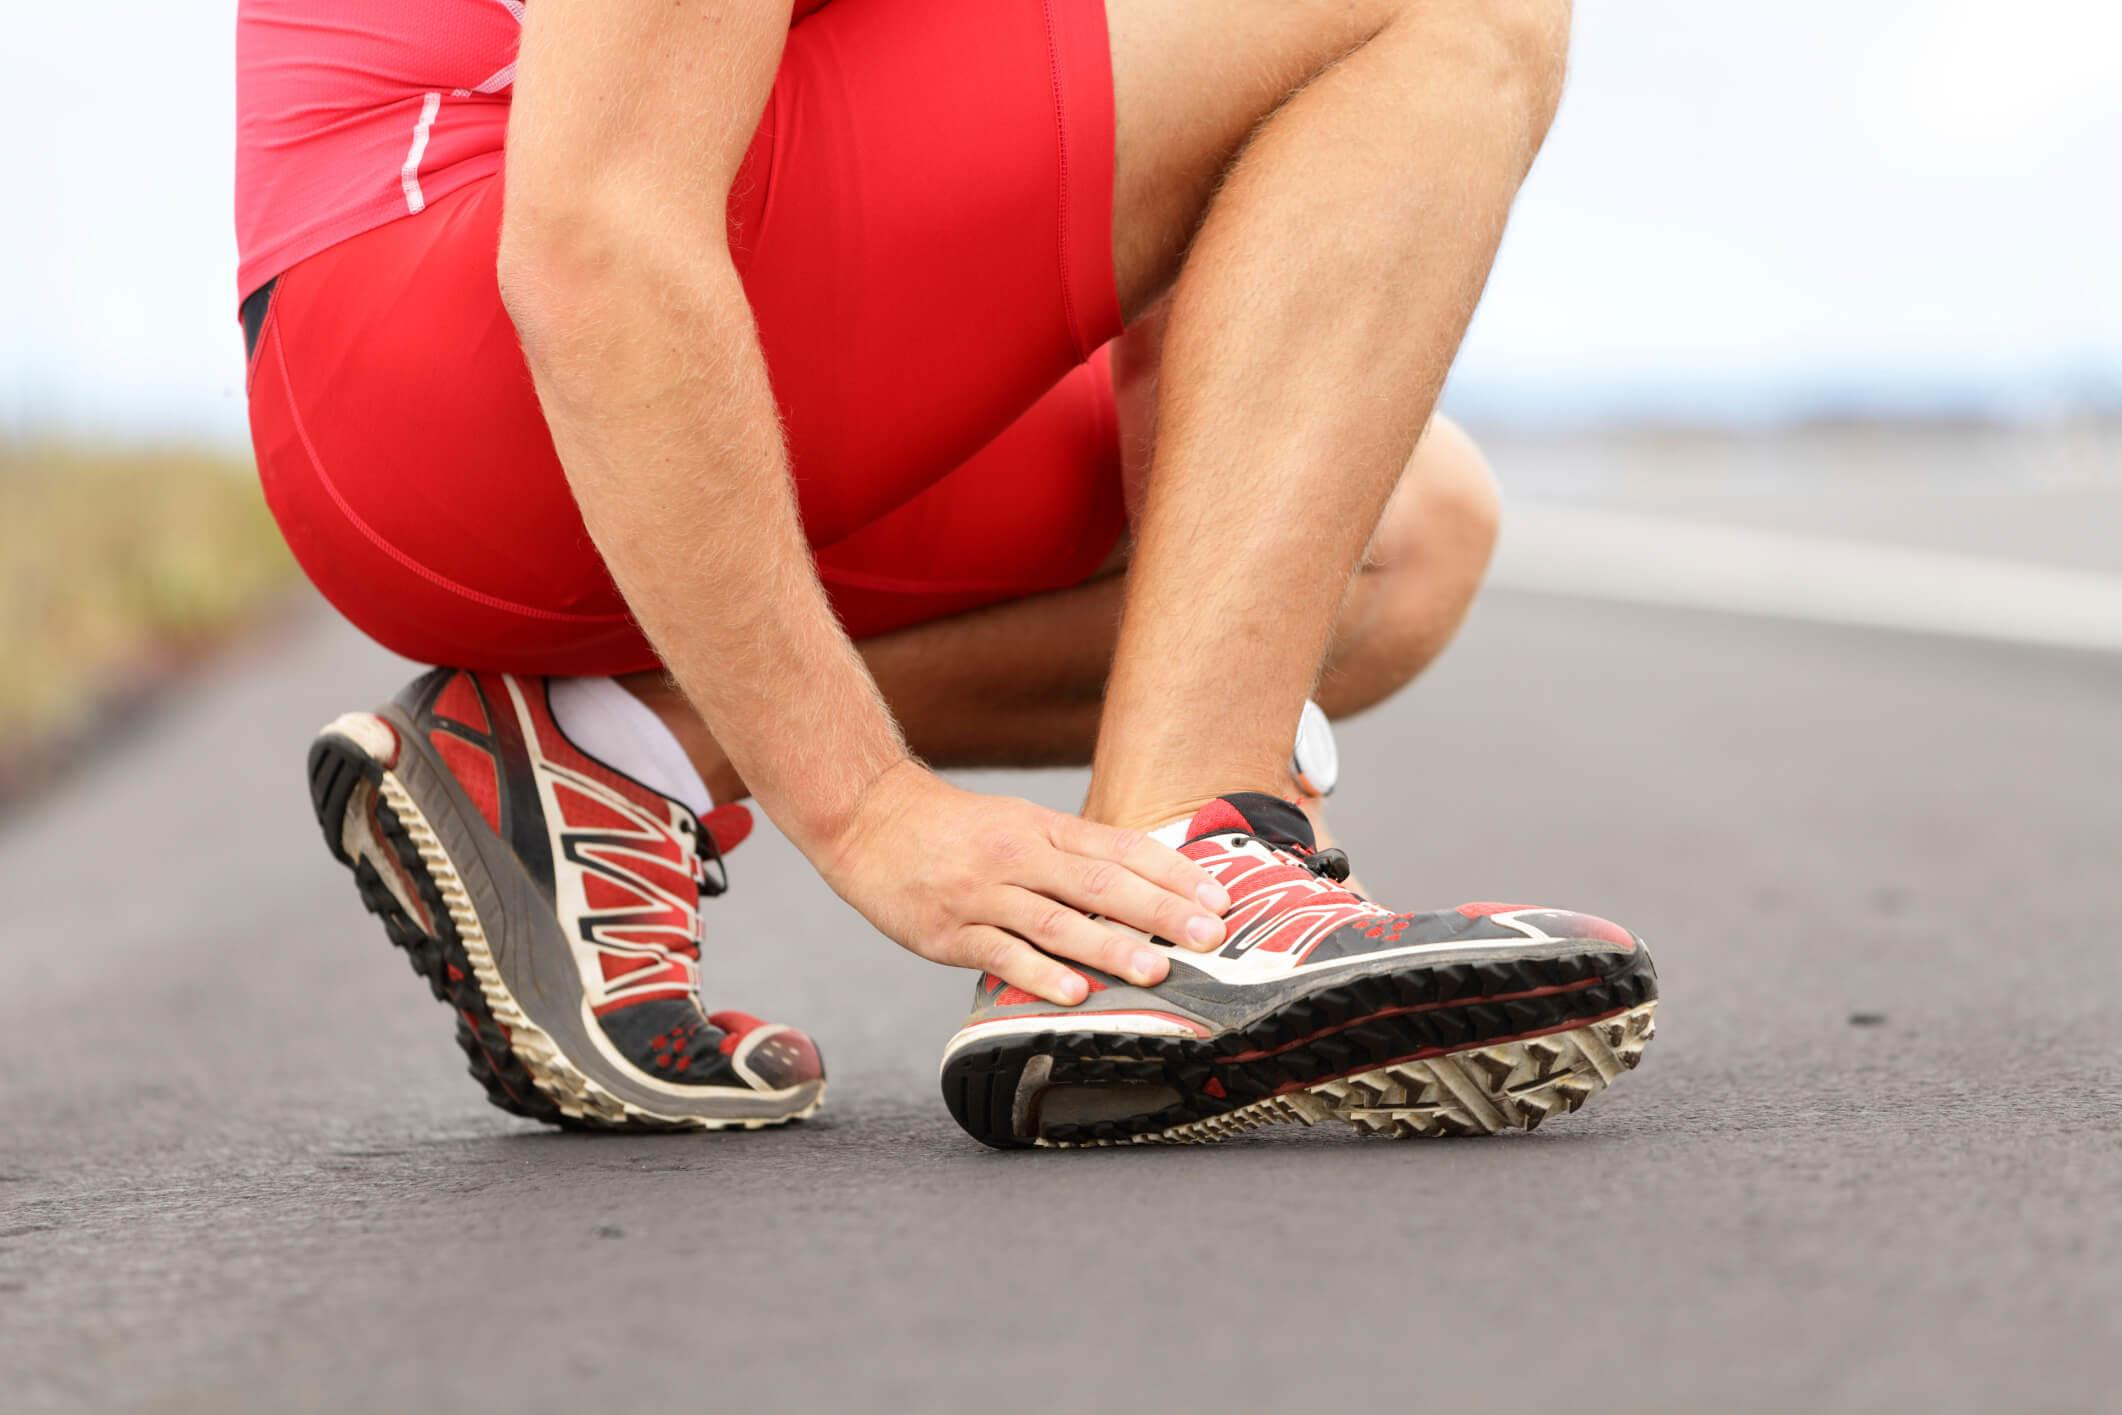 Stress Fractures - A Runner's Approach to Diagnosis, Treatment